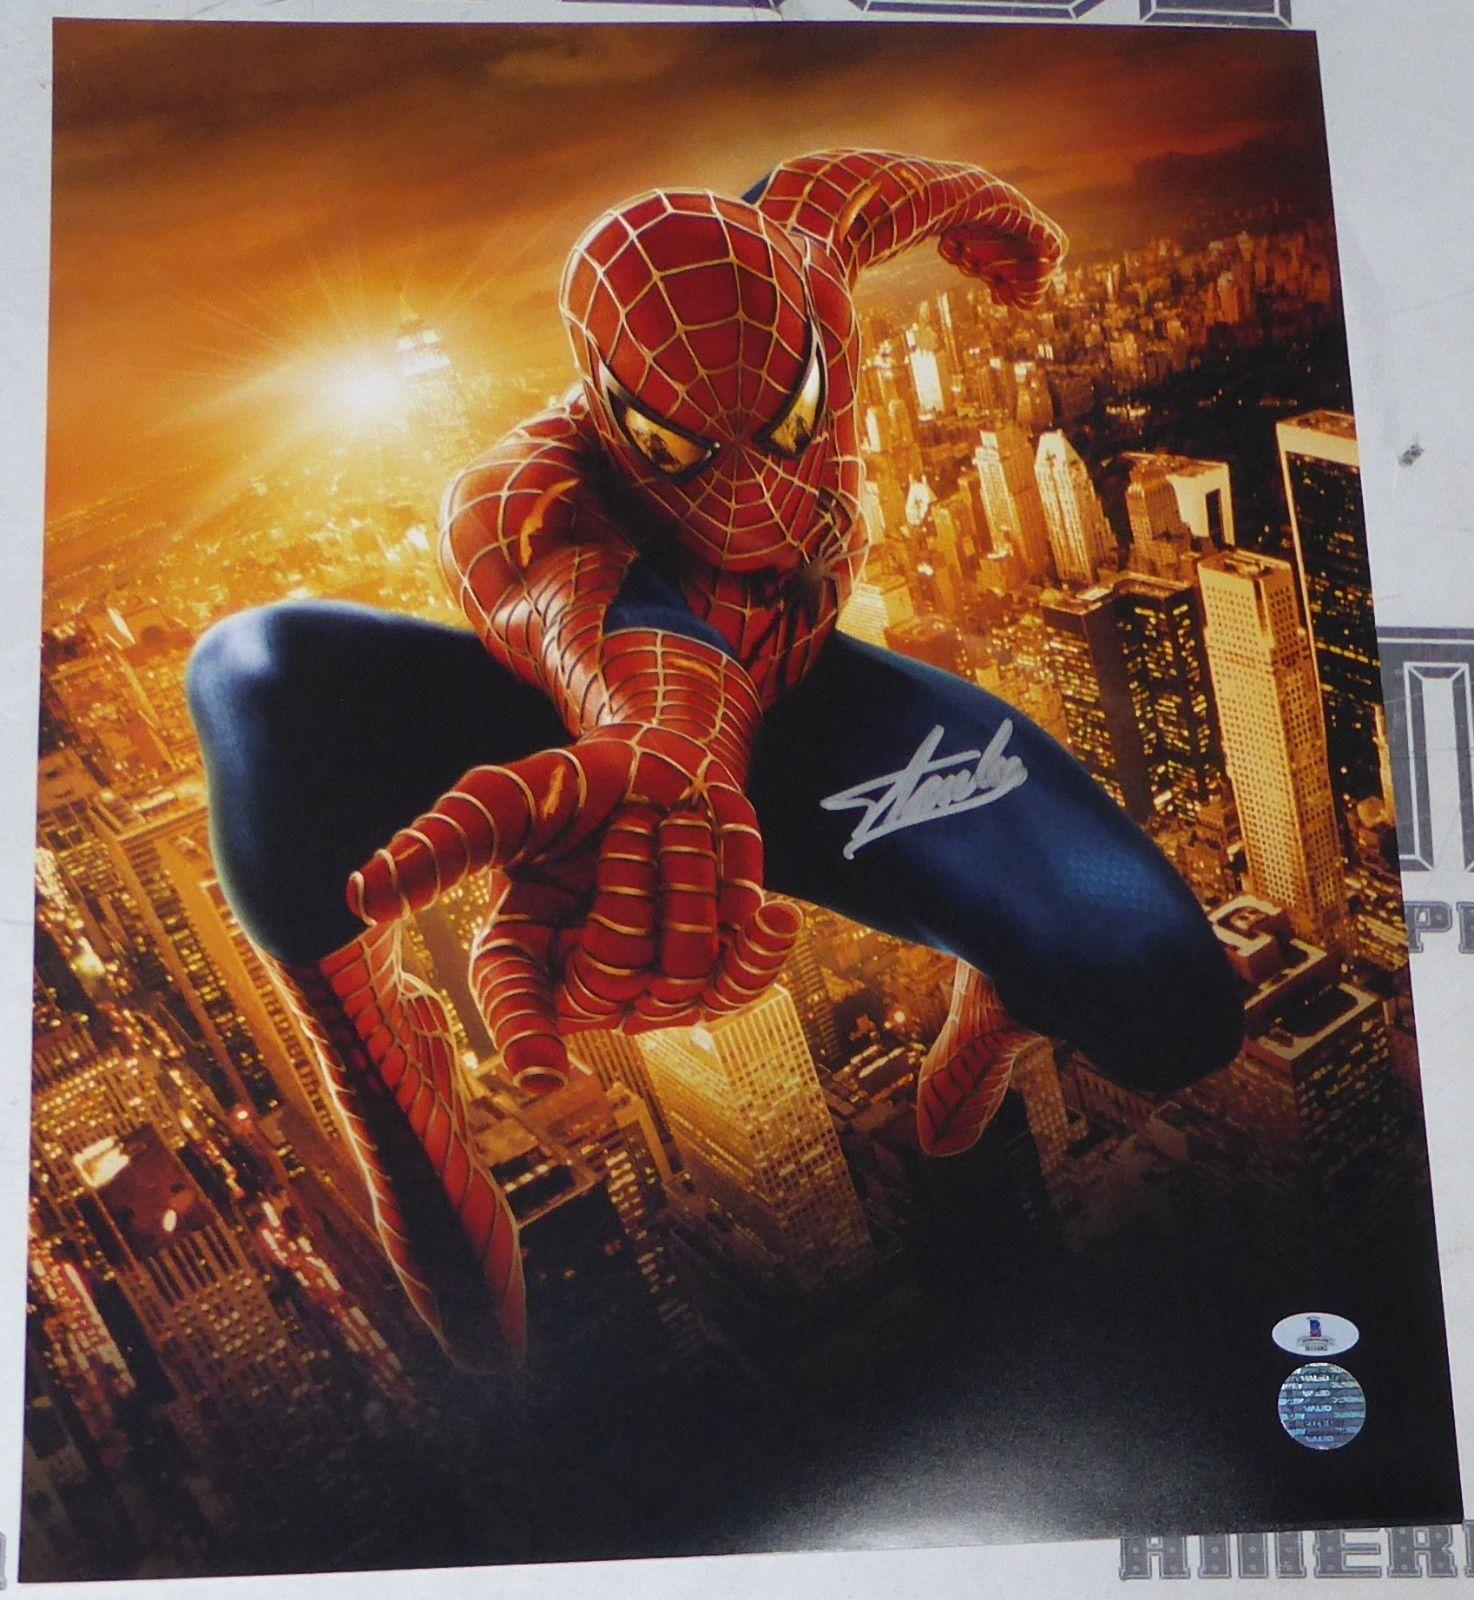 Stan Lee Signed 16x20 Photo BAS Beckett COA Marvel Spider-Man Picture Autograph